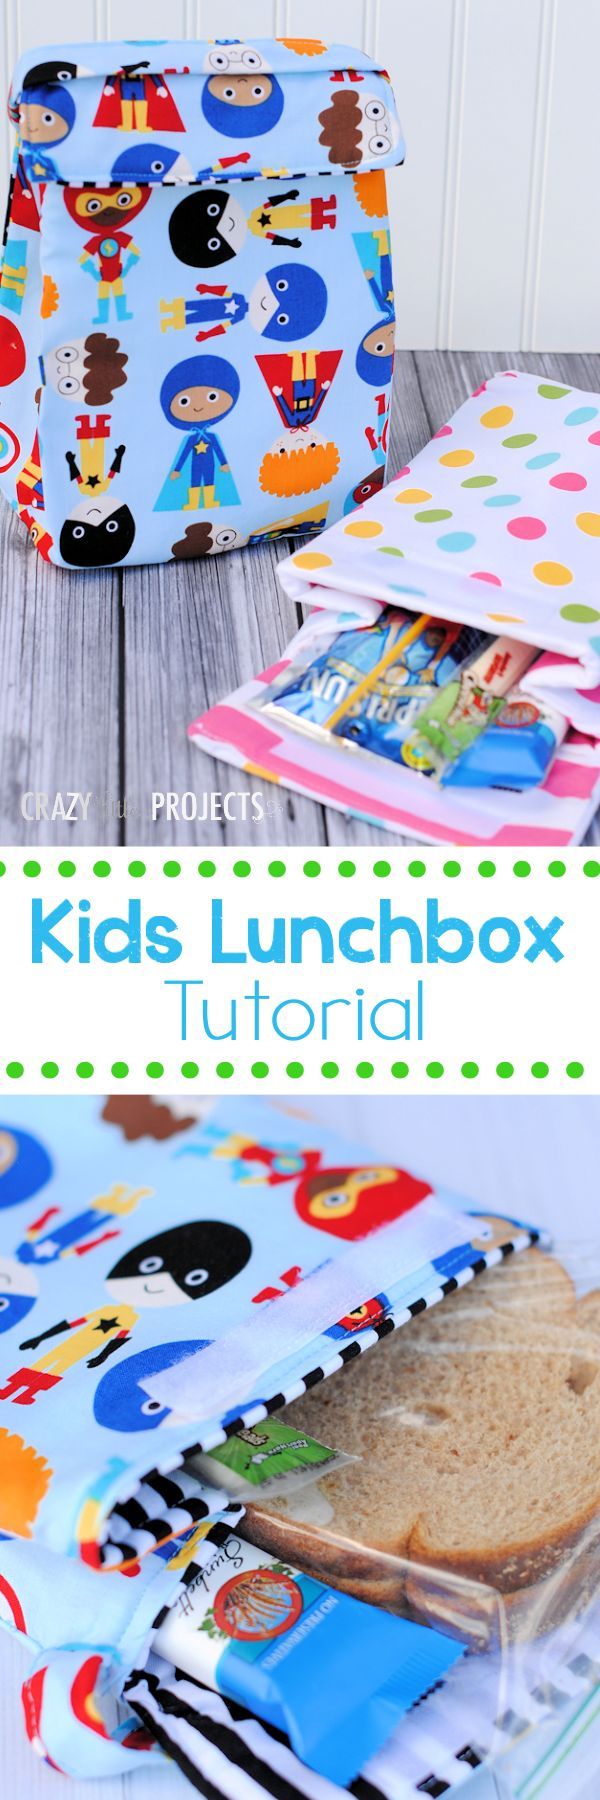 Kids Insulated Lunch Box Pattern. Just in case I can't find what I want...going to sell these